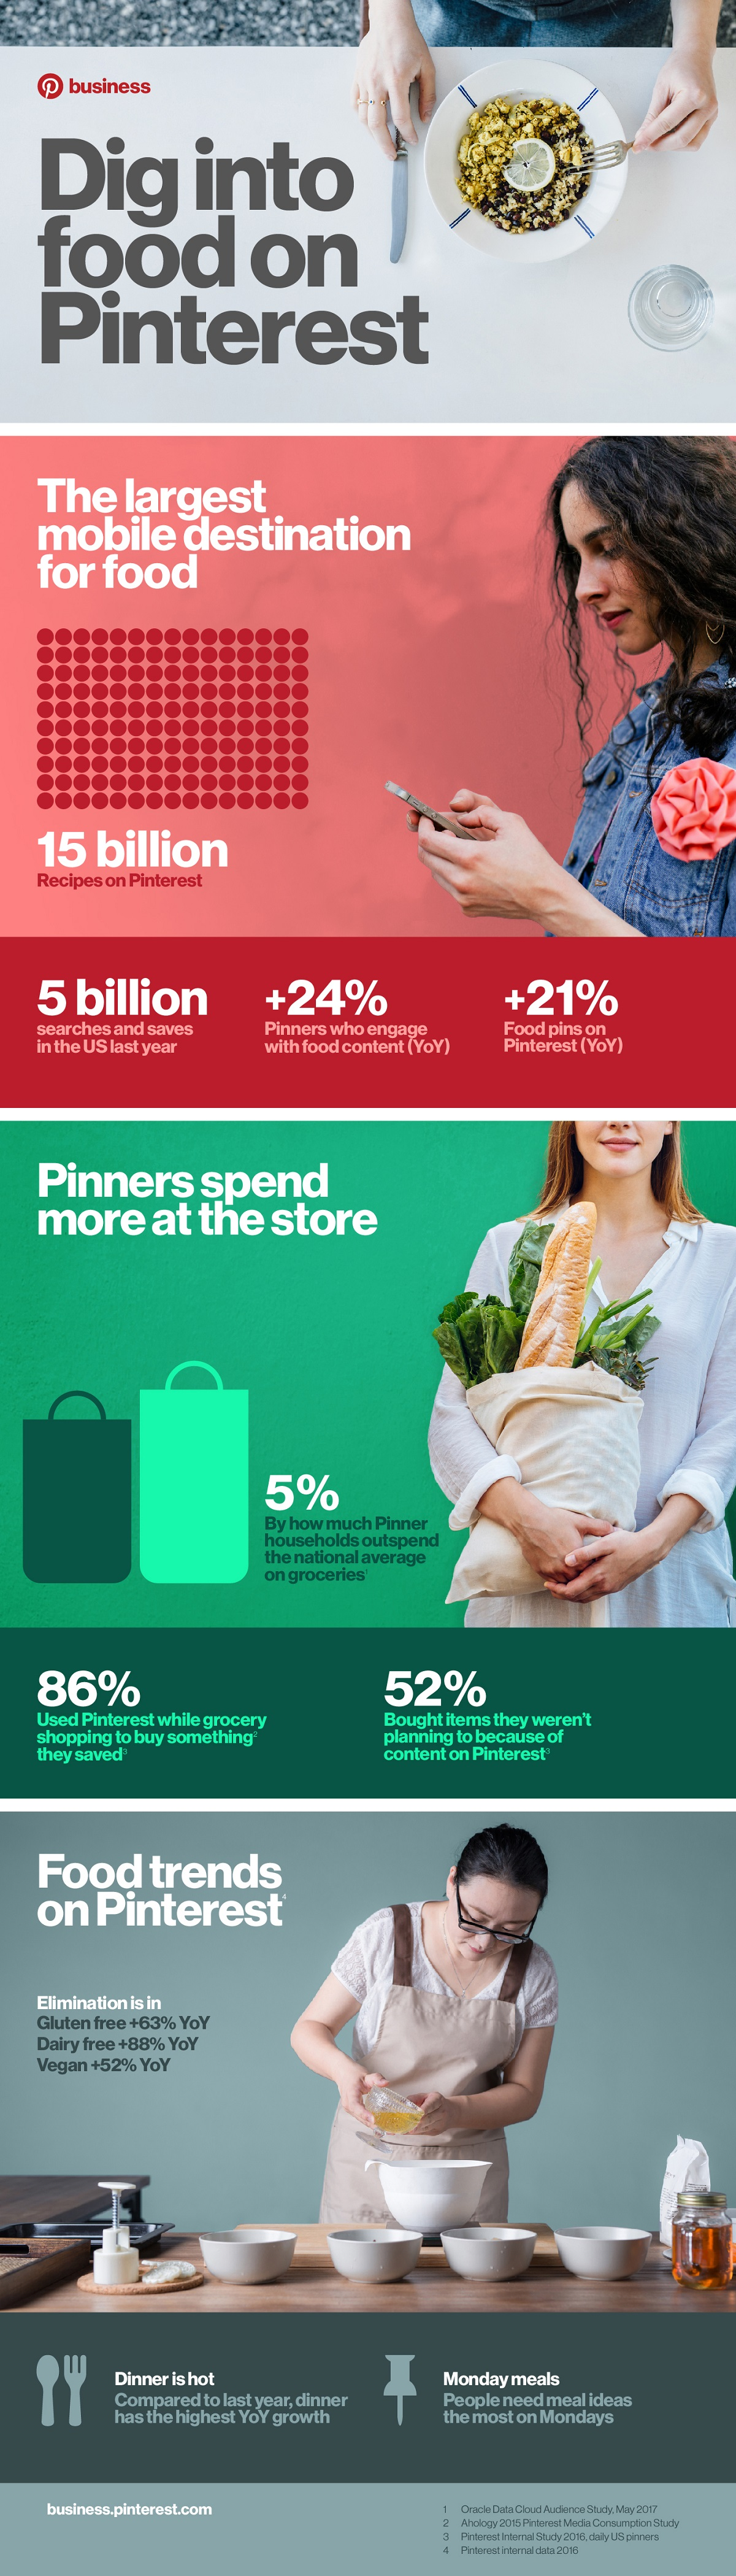 Dig into Food on Pinterest